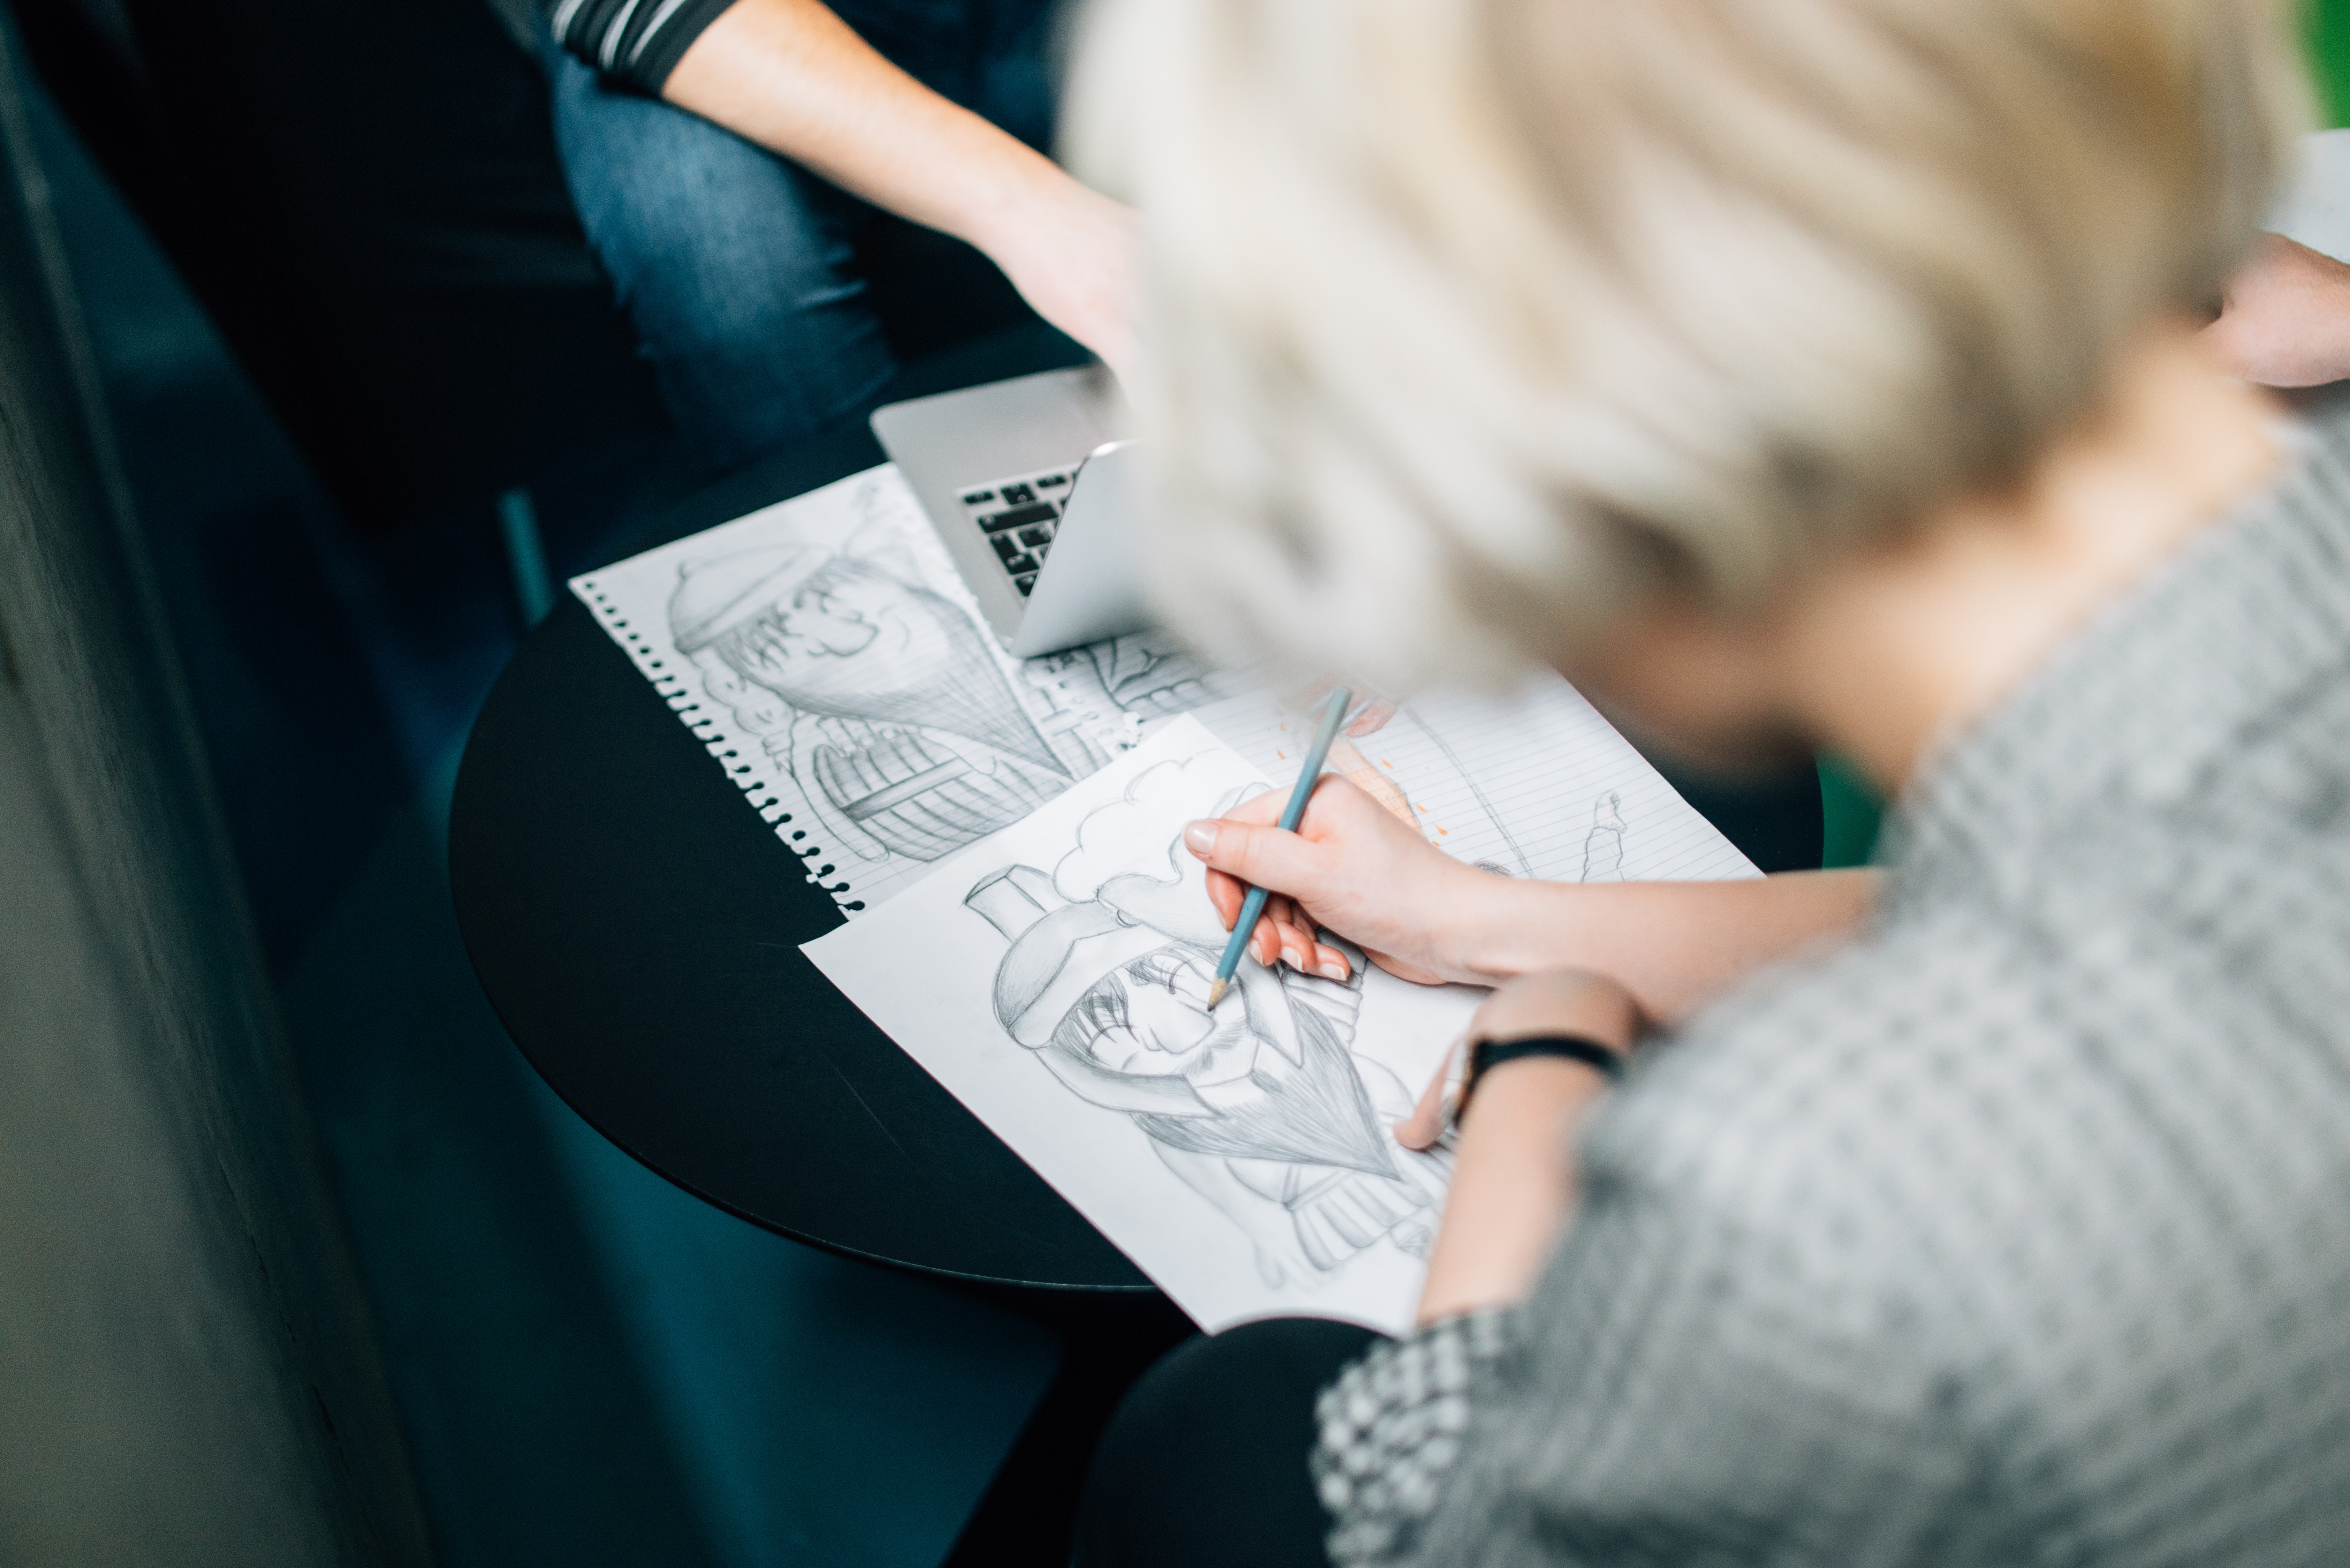 A caucasian female drawing and sketching a character with her pencil